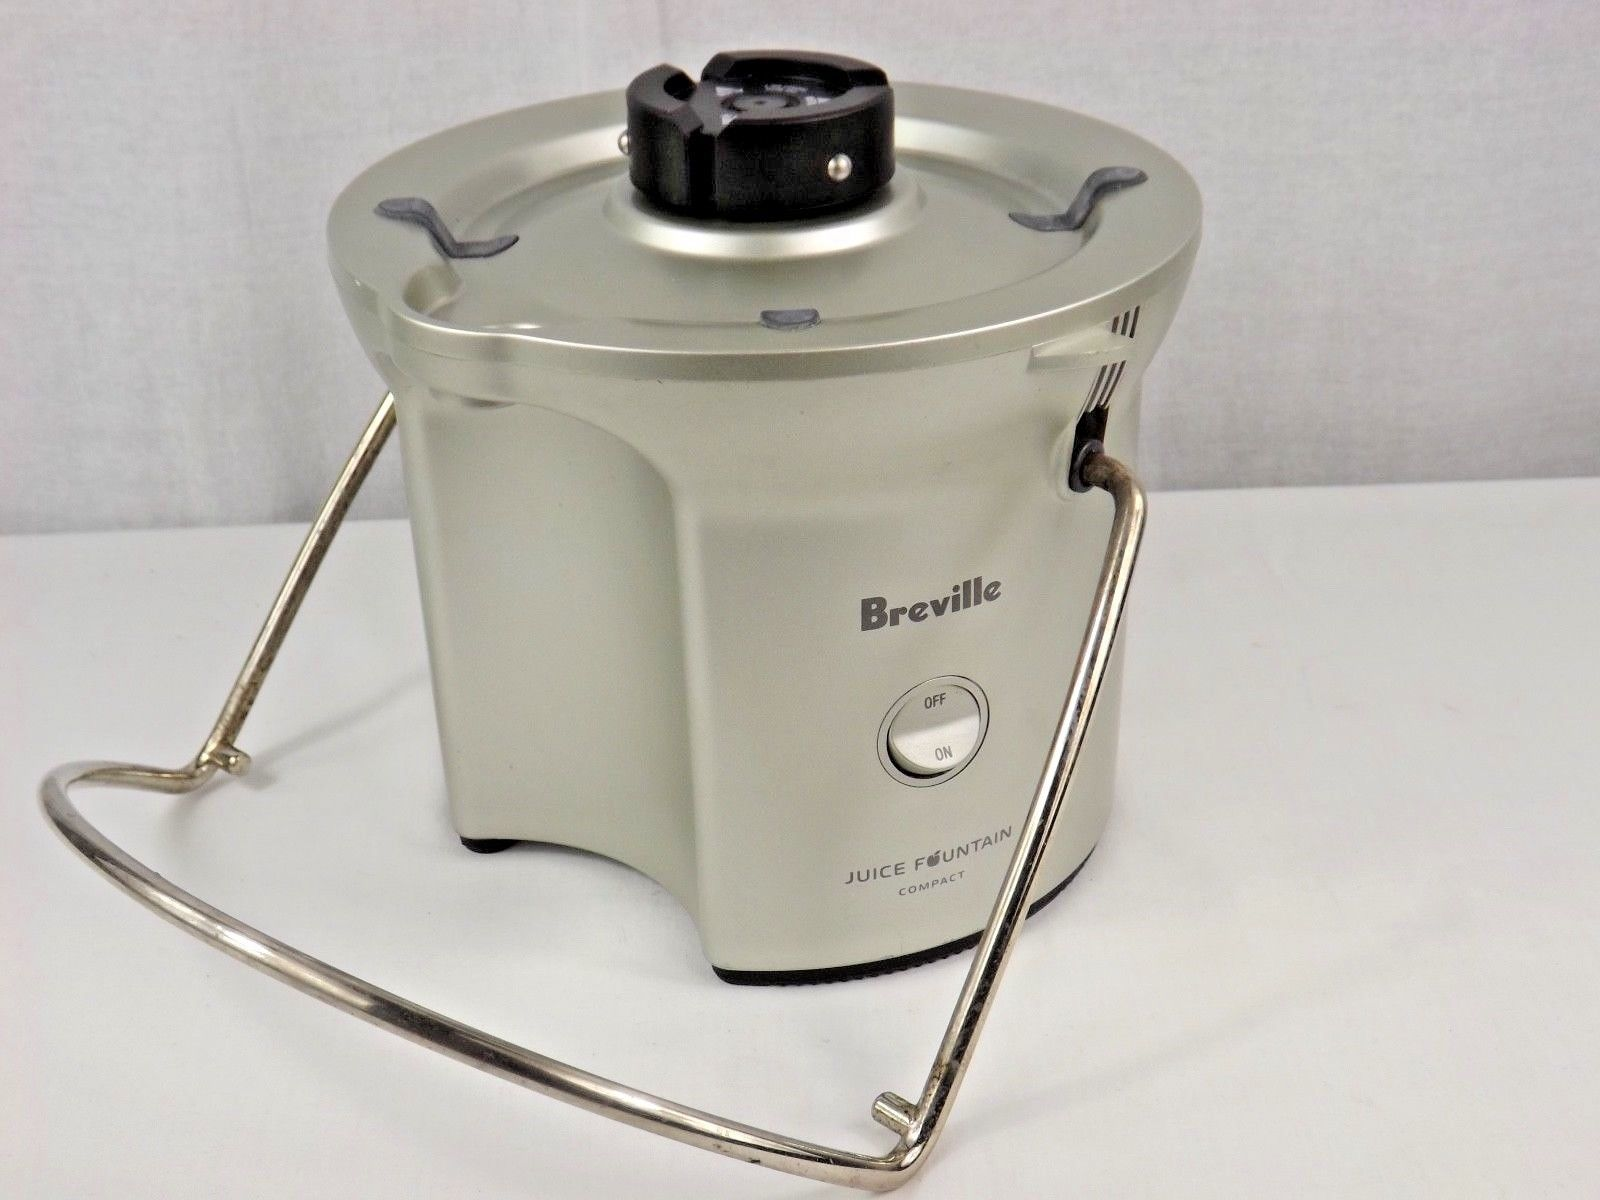 Breville BJE200XL Compact Juicer Fountain Replacement Motor Base Parts - WORKS